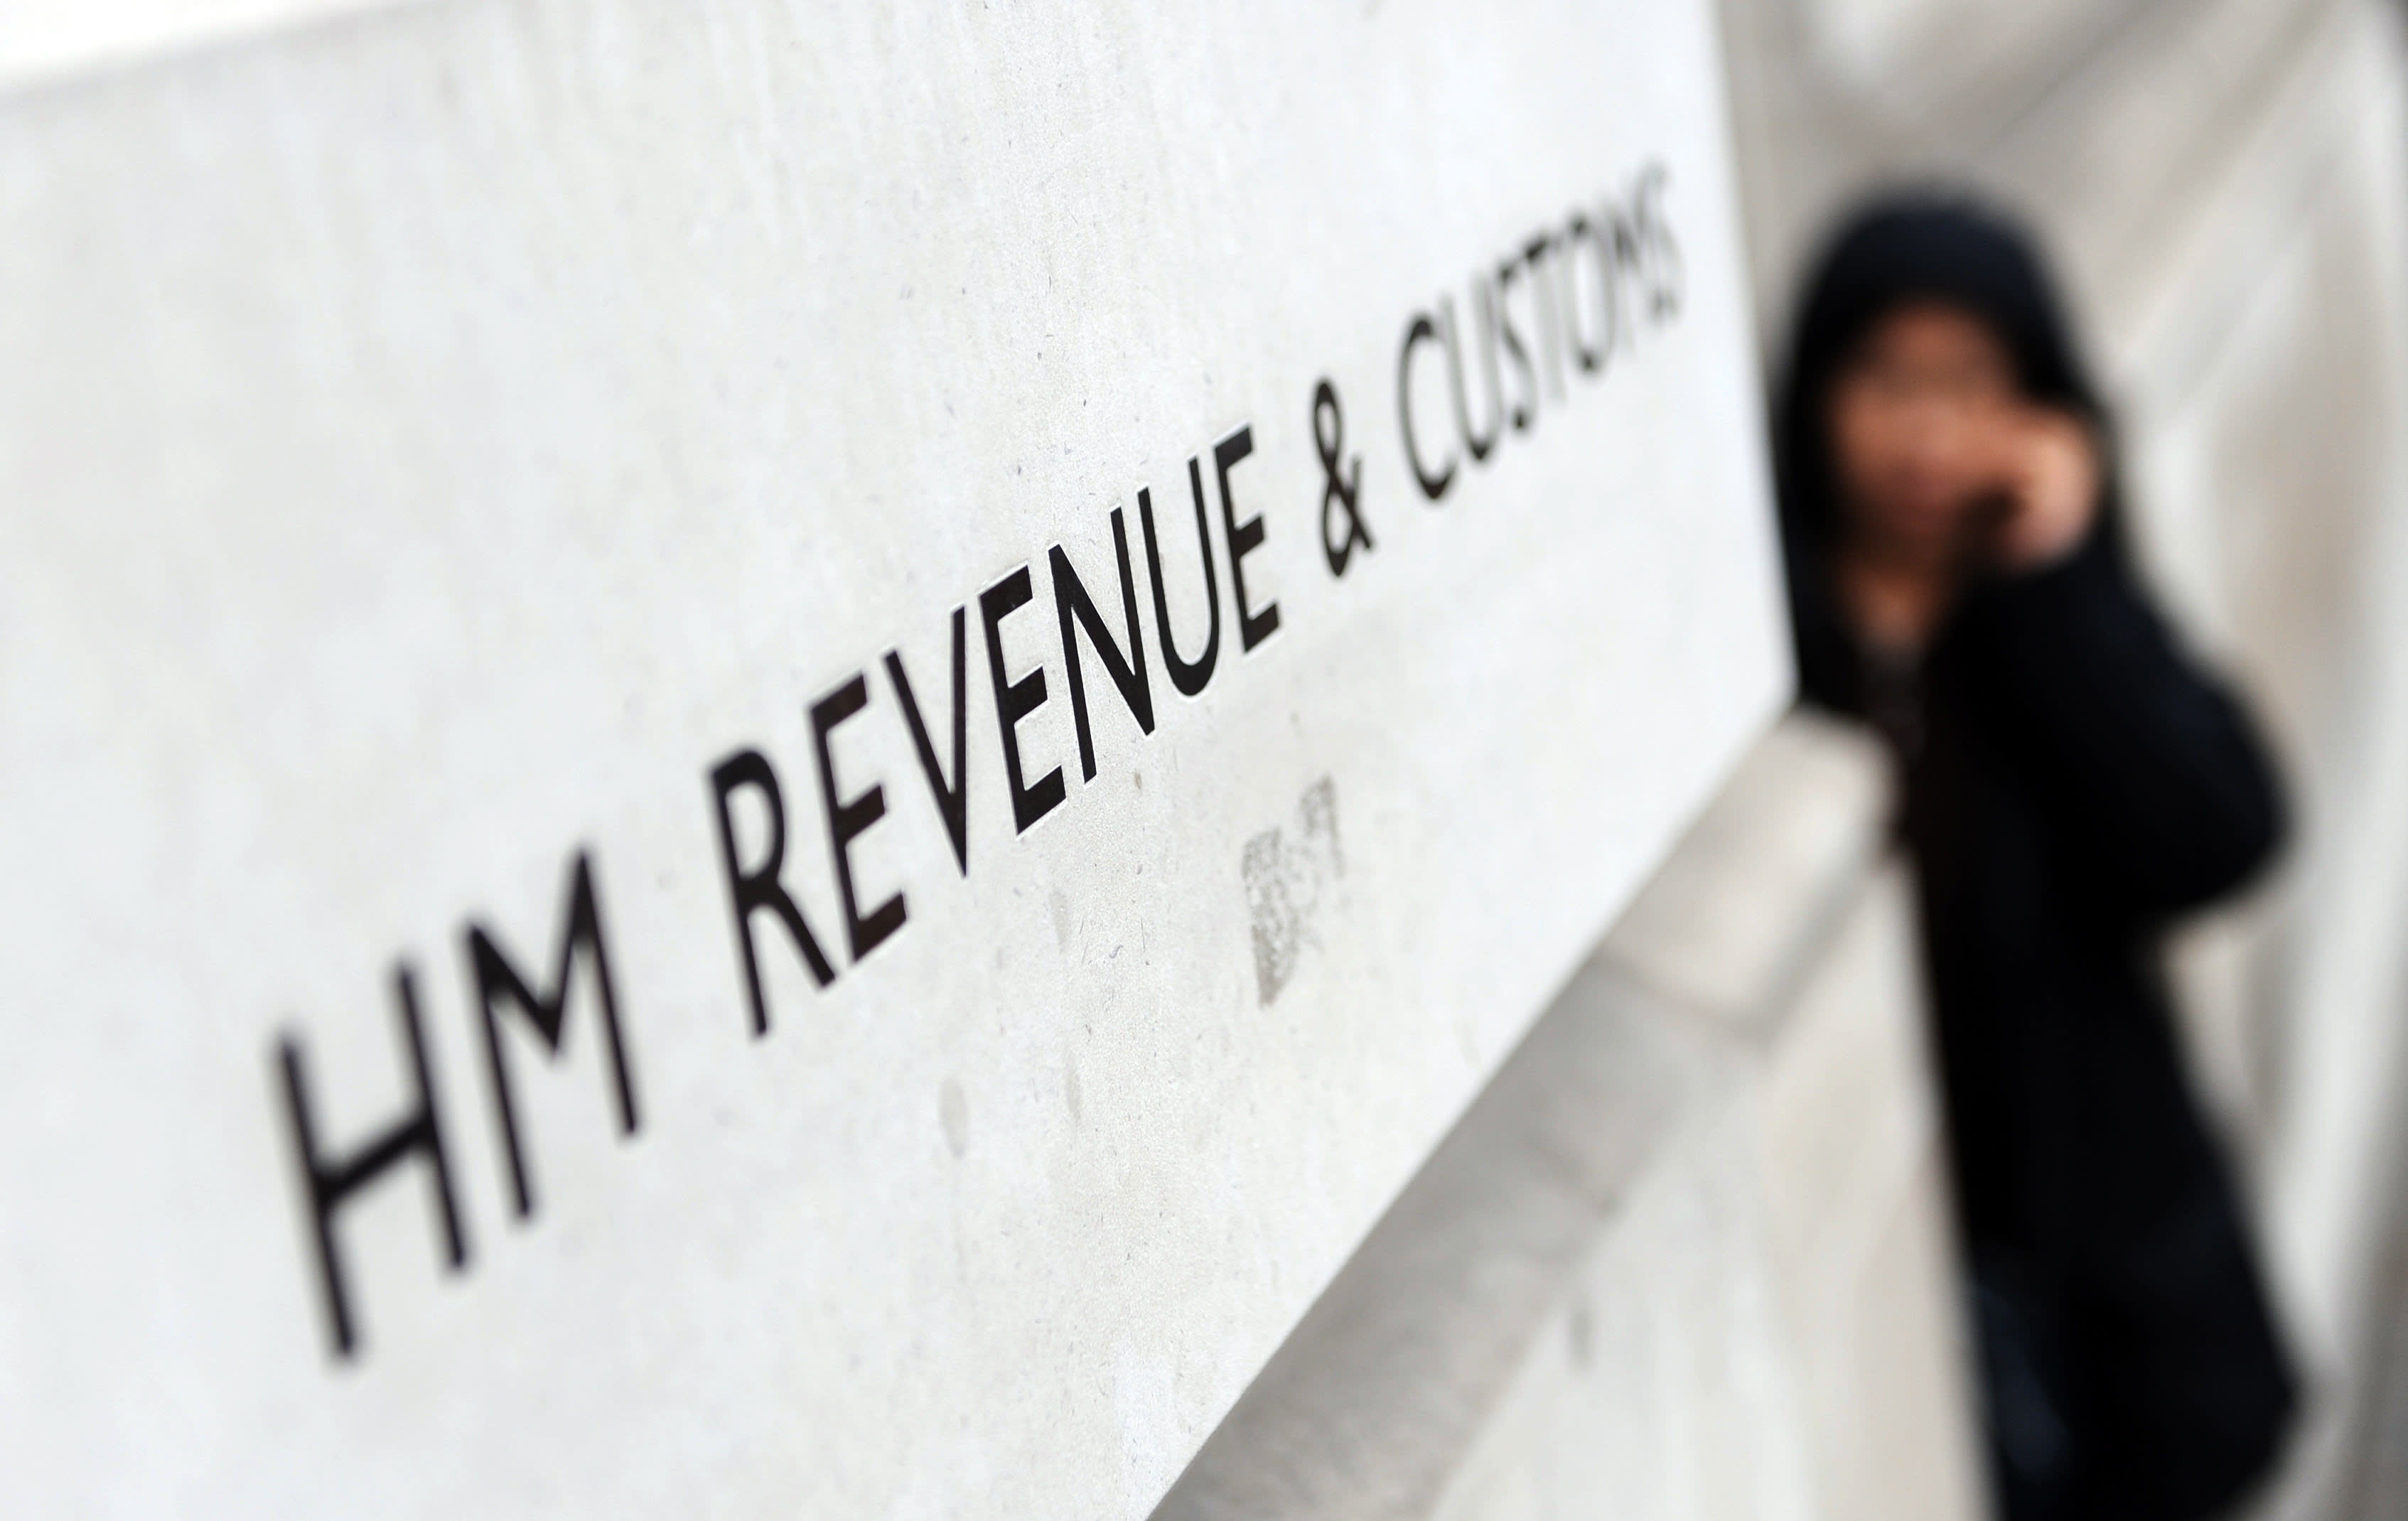 HMRC under fire for 'overly complex' tax refunds